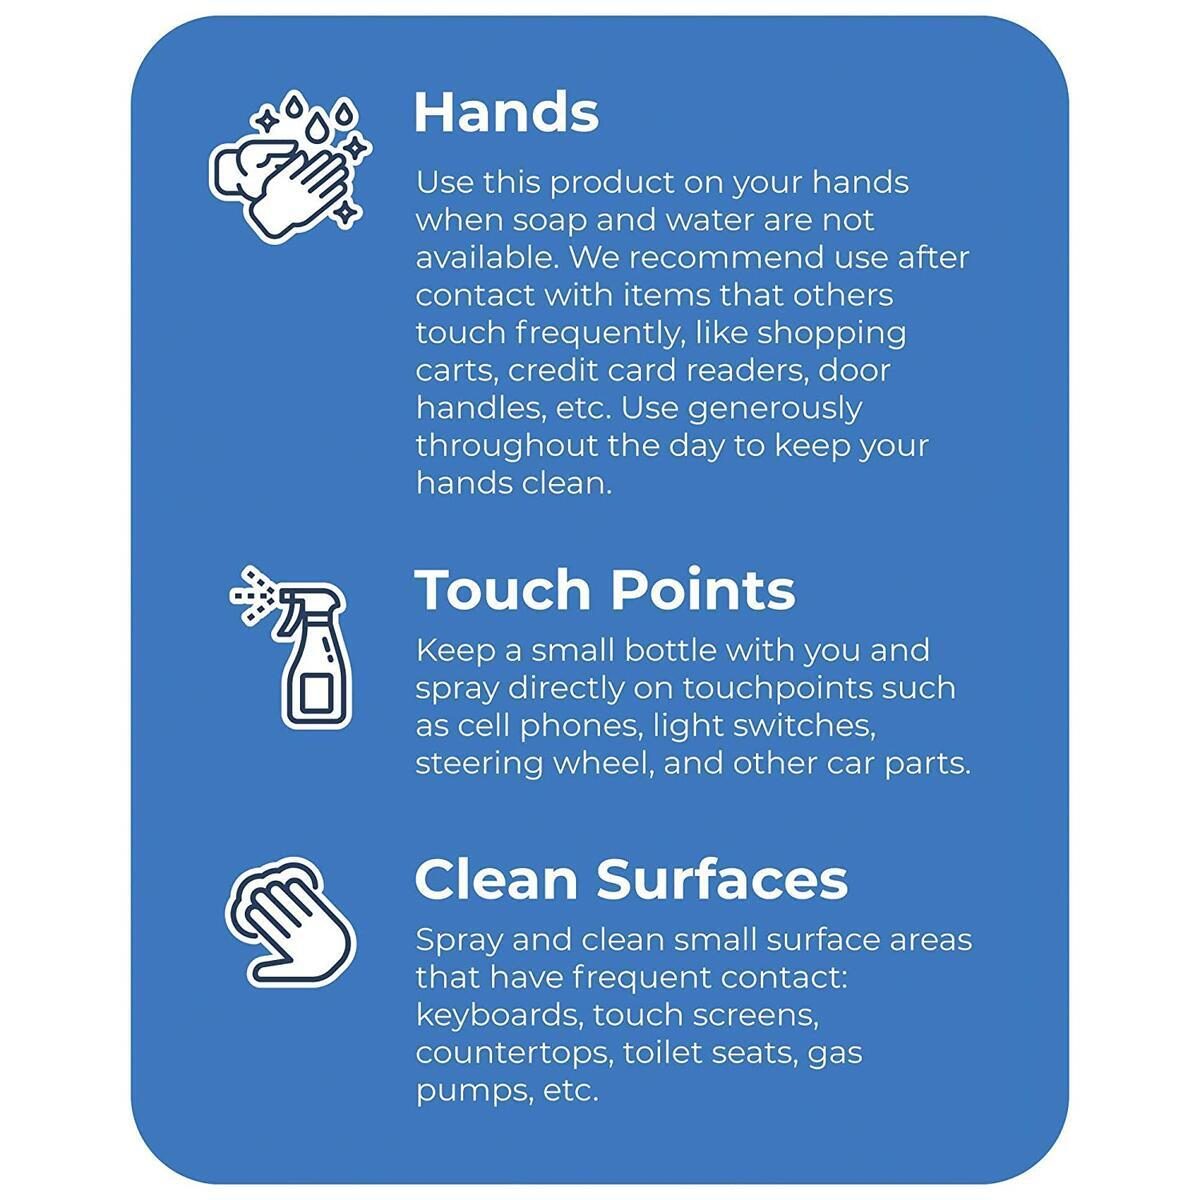 TotallyPure 2oz Hand Sanitizer 2 PACK Special